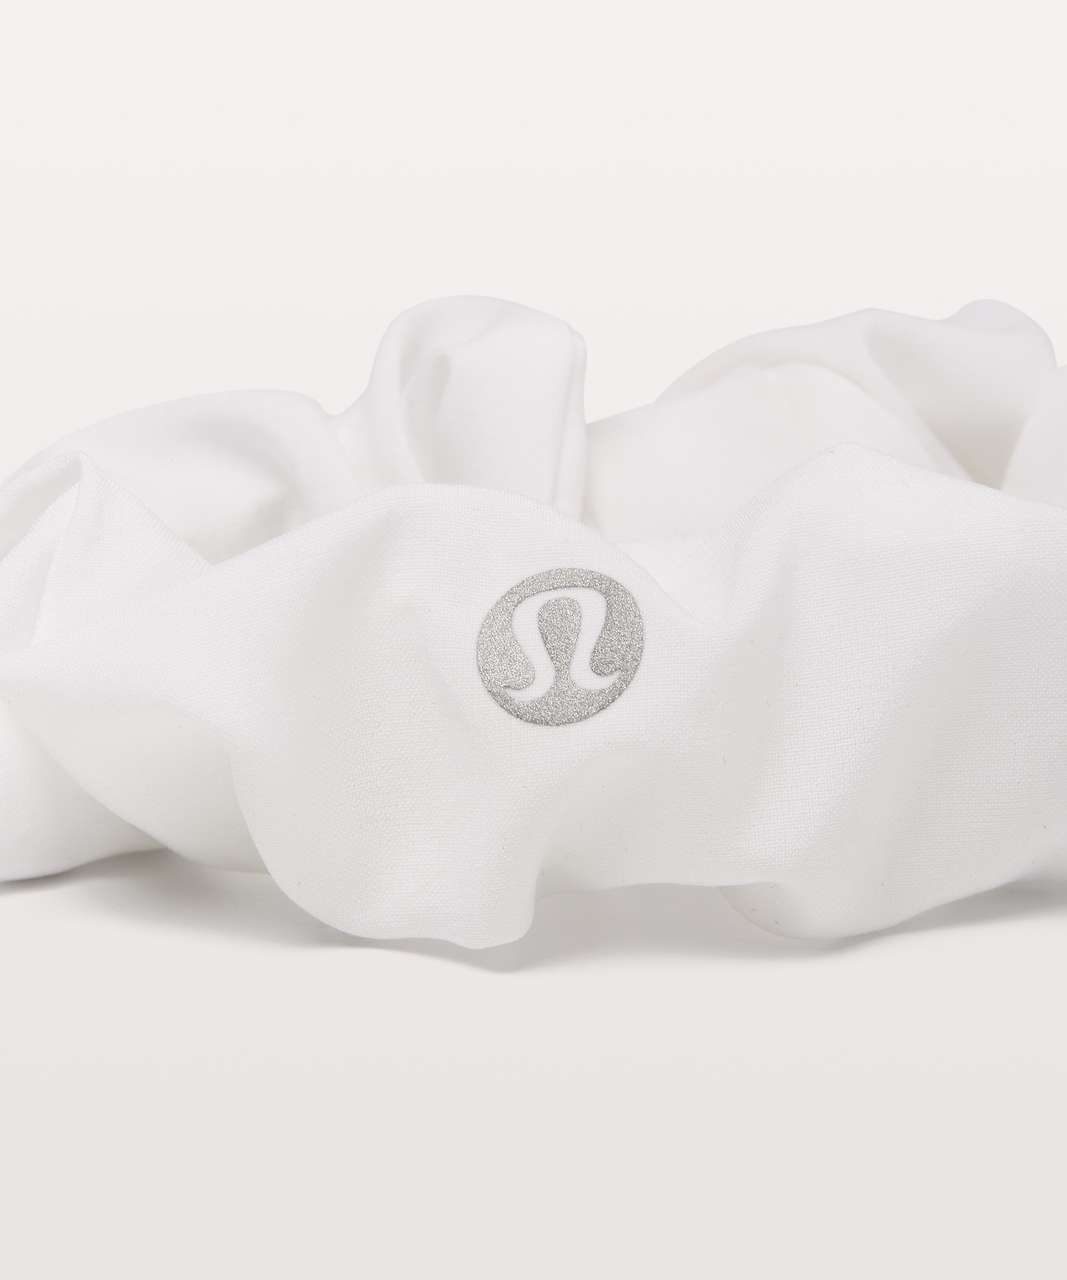 Lululemon Uplifting Scrunchie - White (First Release)